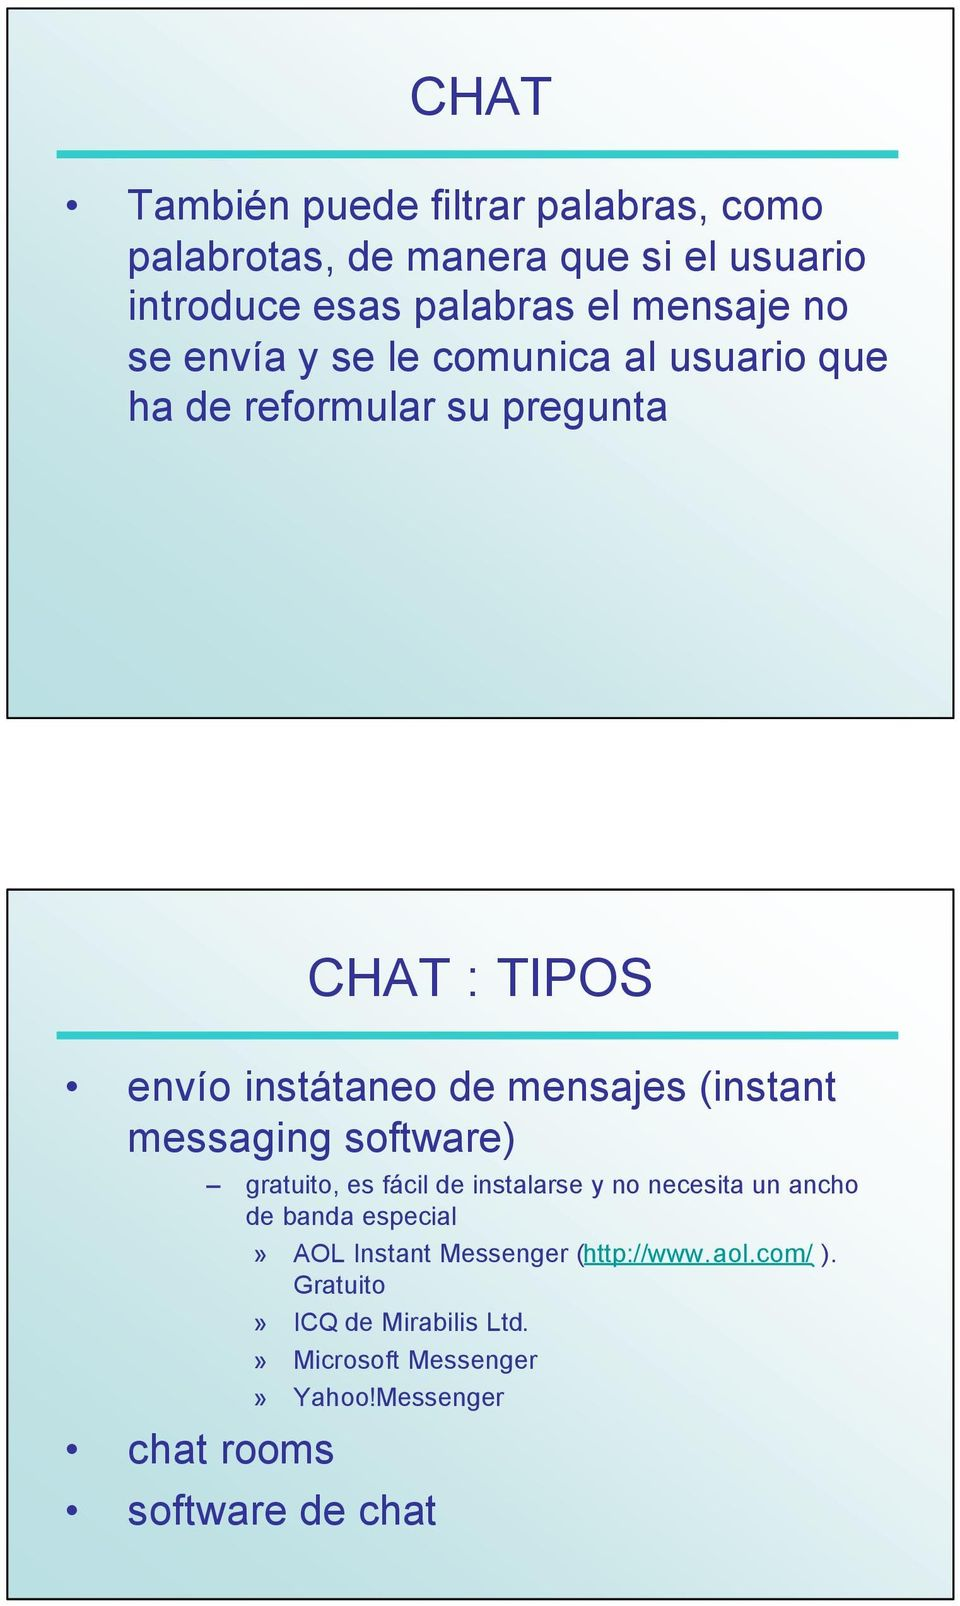 (instant messaging software) chat rooms gratuito, es fácil de instalarse y no necesita un ancho de banda especial» AOL